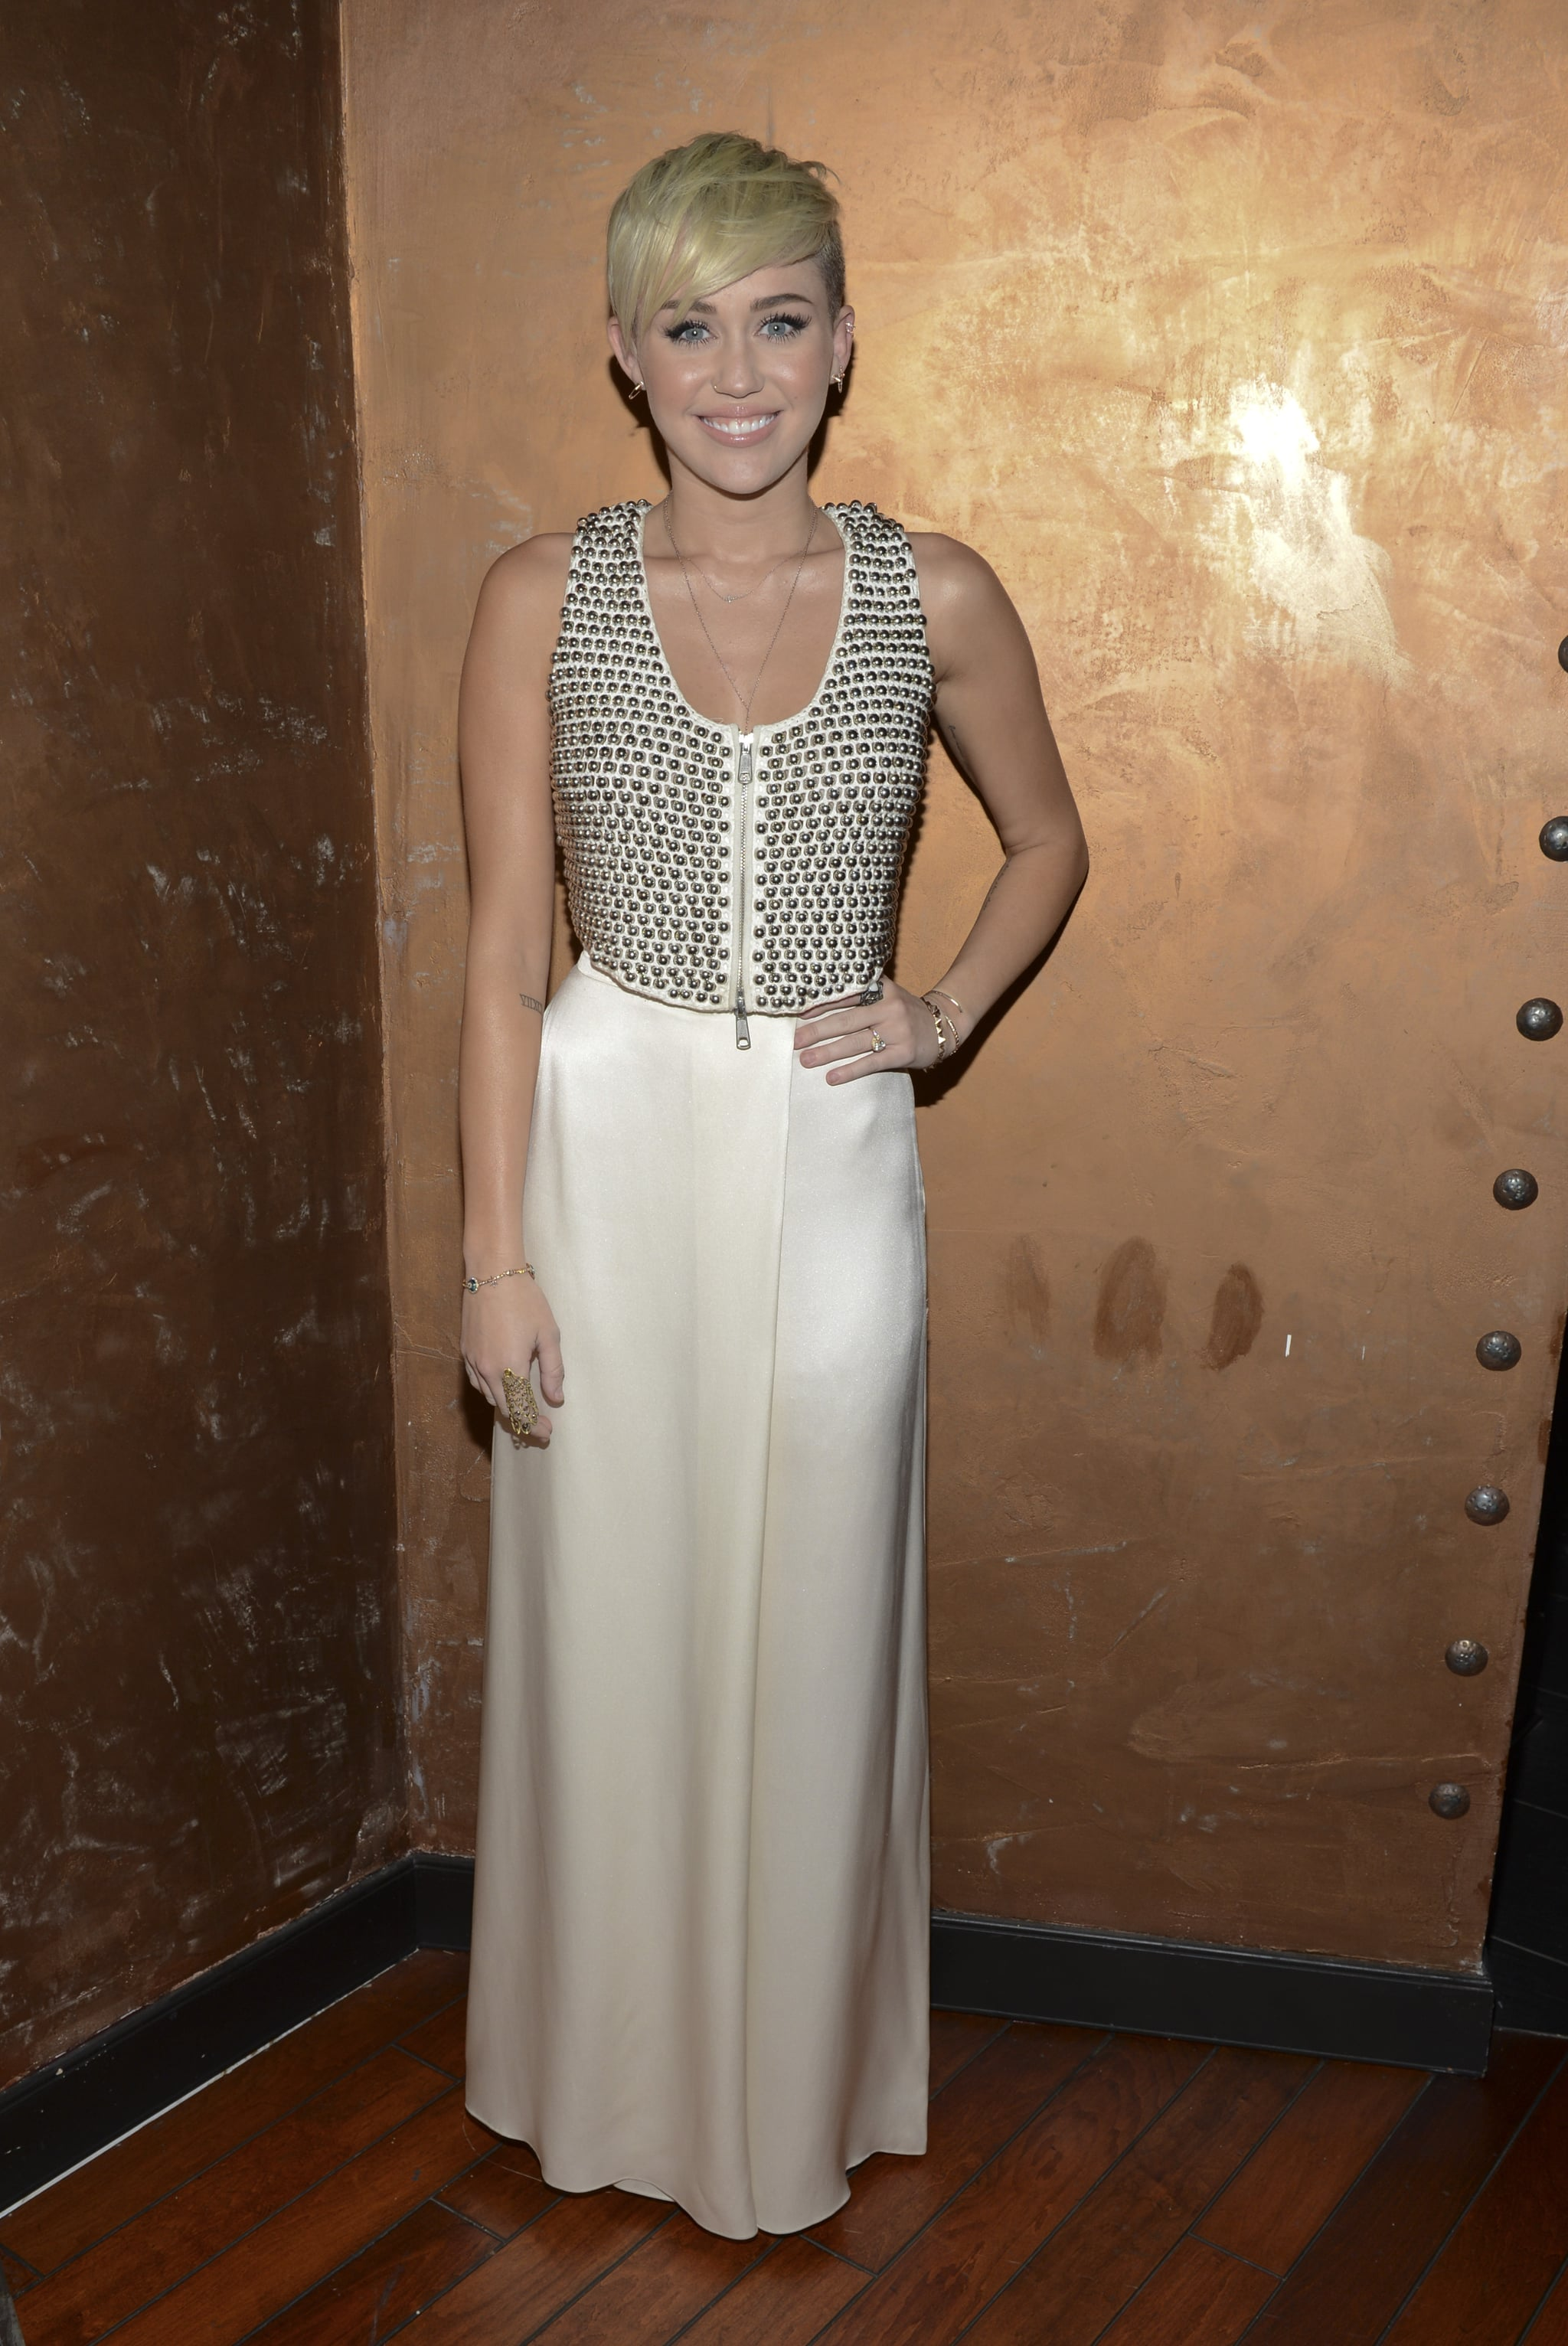 Miley Cyrus posed for photos at the City of Hope charity's gala in LA.